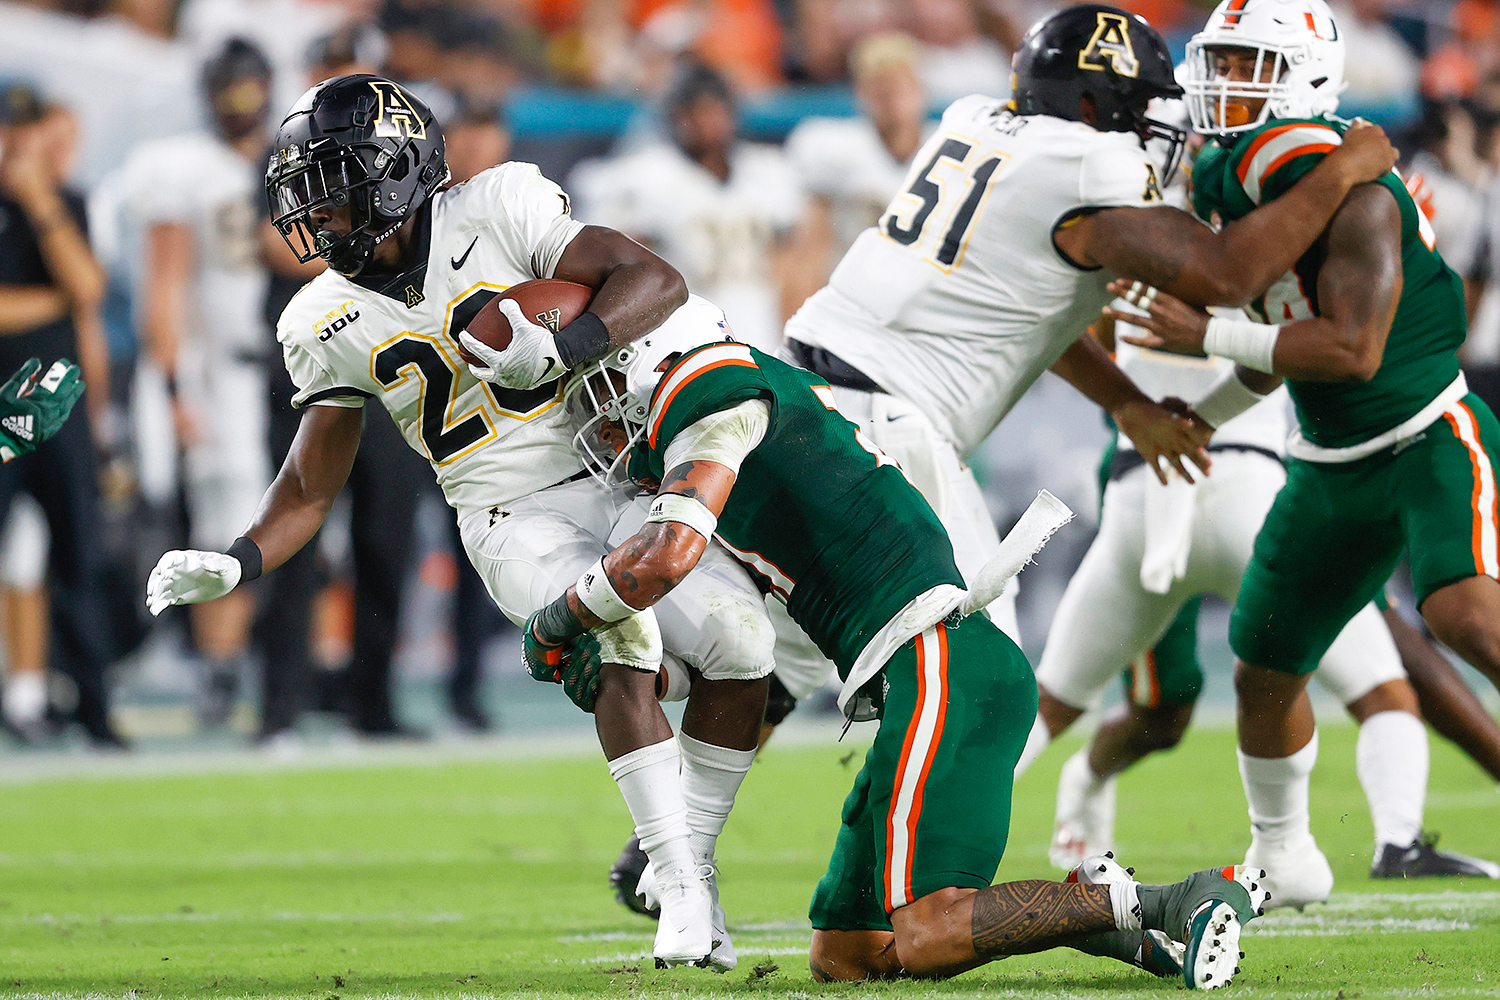 Cat Falls en Miami Hurricanes Game, Saved with an American Flag: ¡Mira!